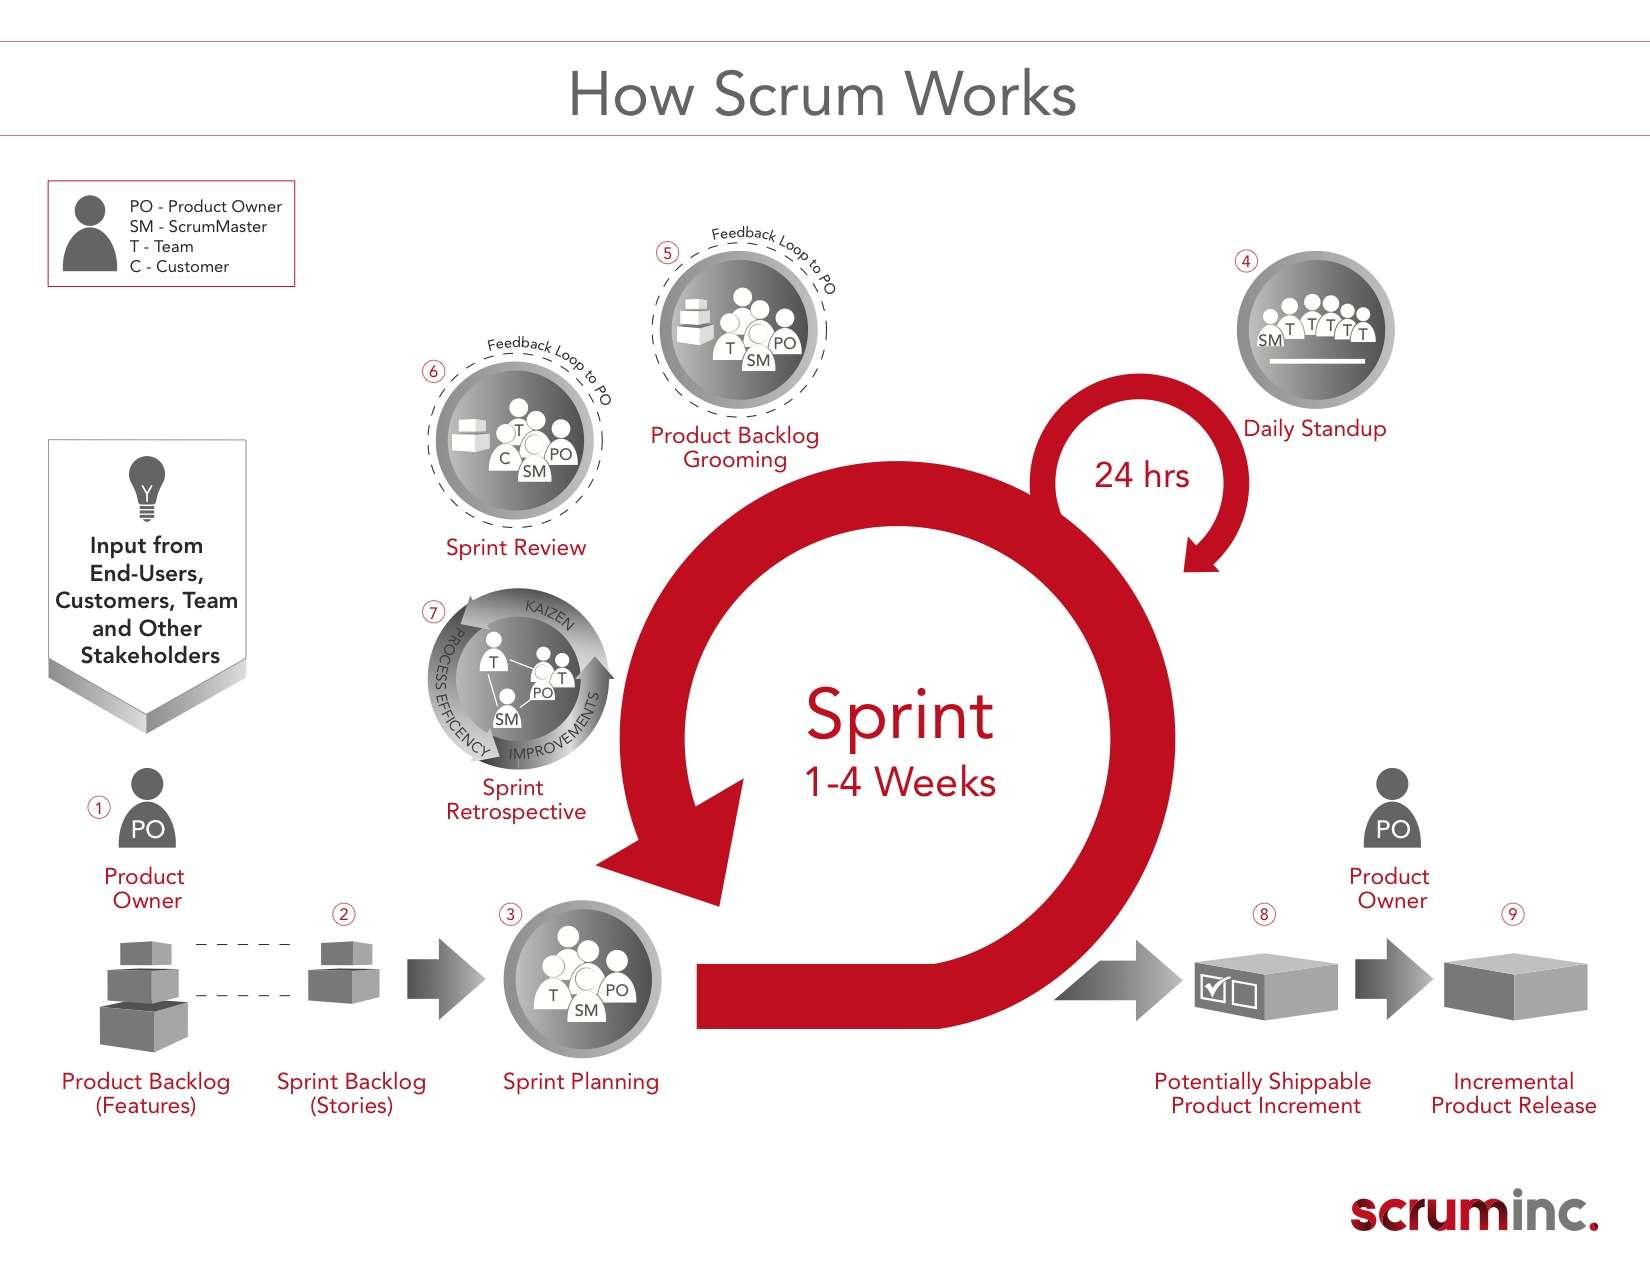 Scrum_Inc_Sprint.jpg